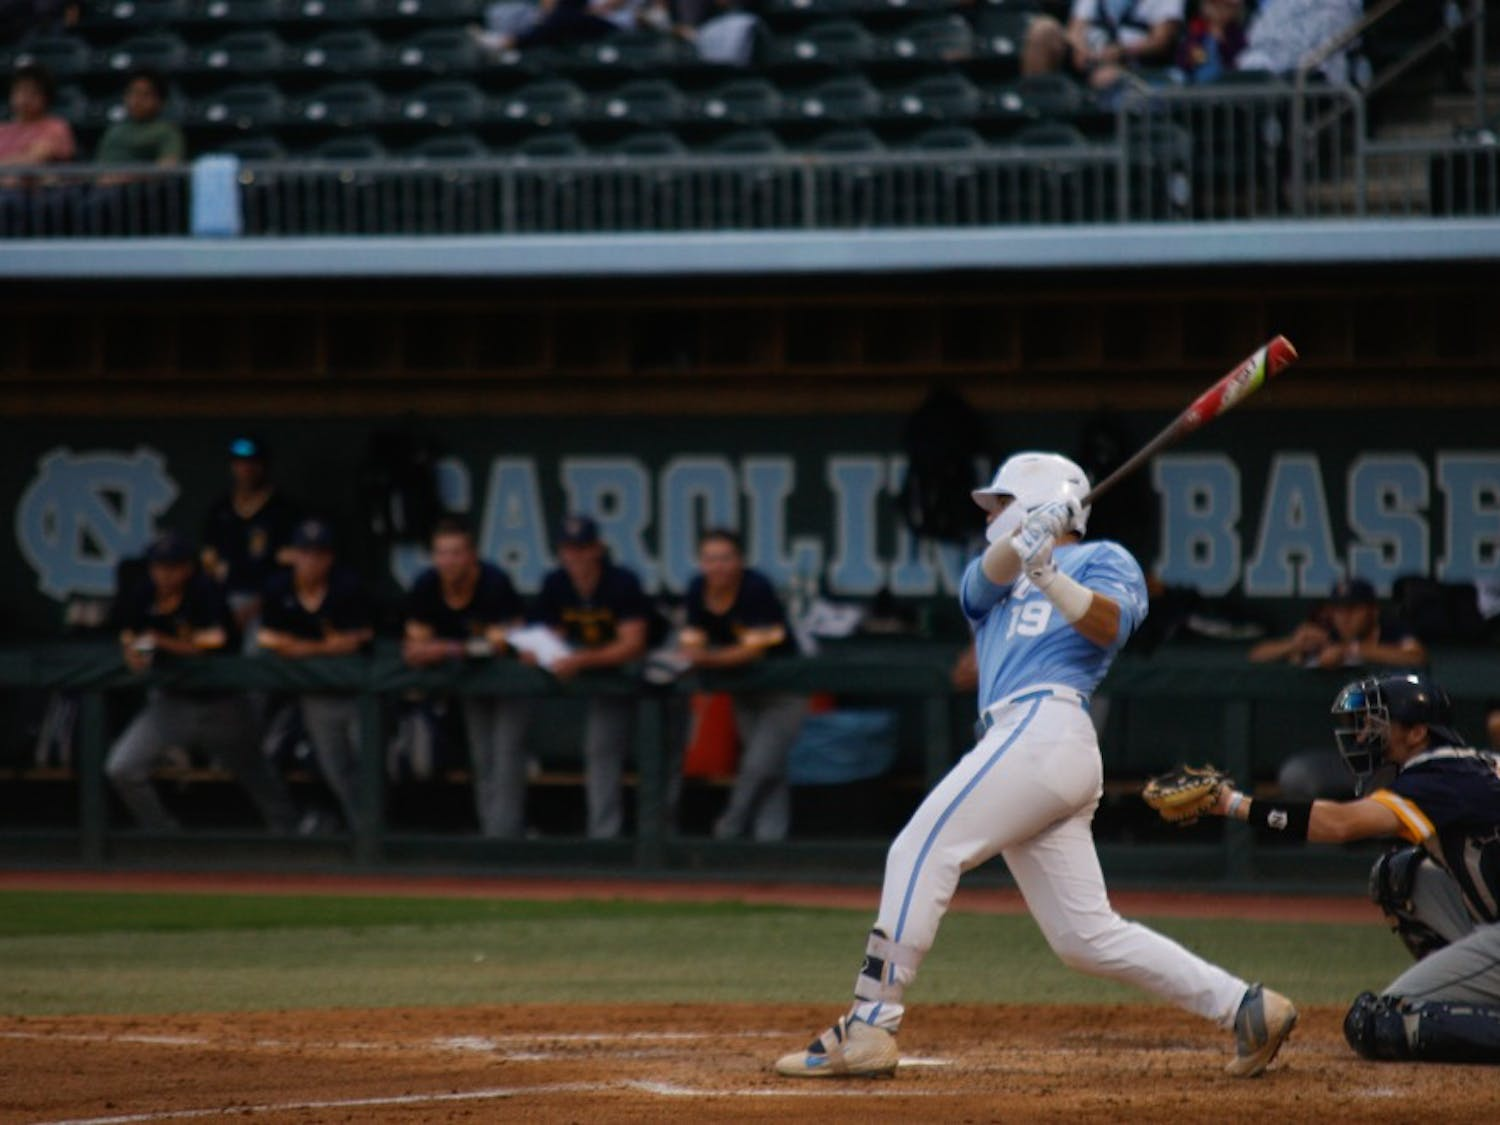 UNC first year desiganted hitter Aaron Sabato (19) swings for the fences against UNCG in Boshamer Stadium on Wednesday, April 9, 2019.